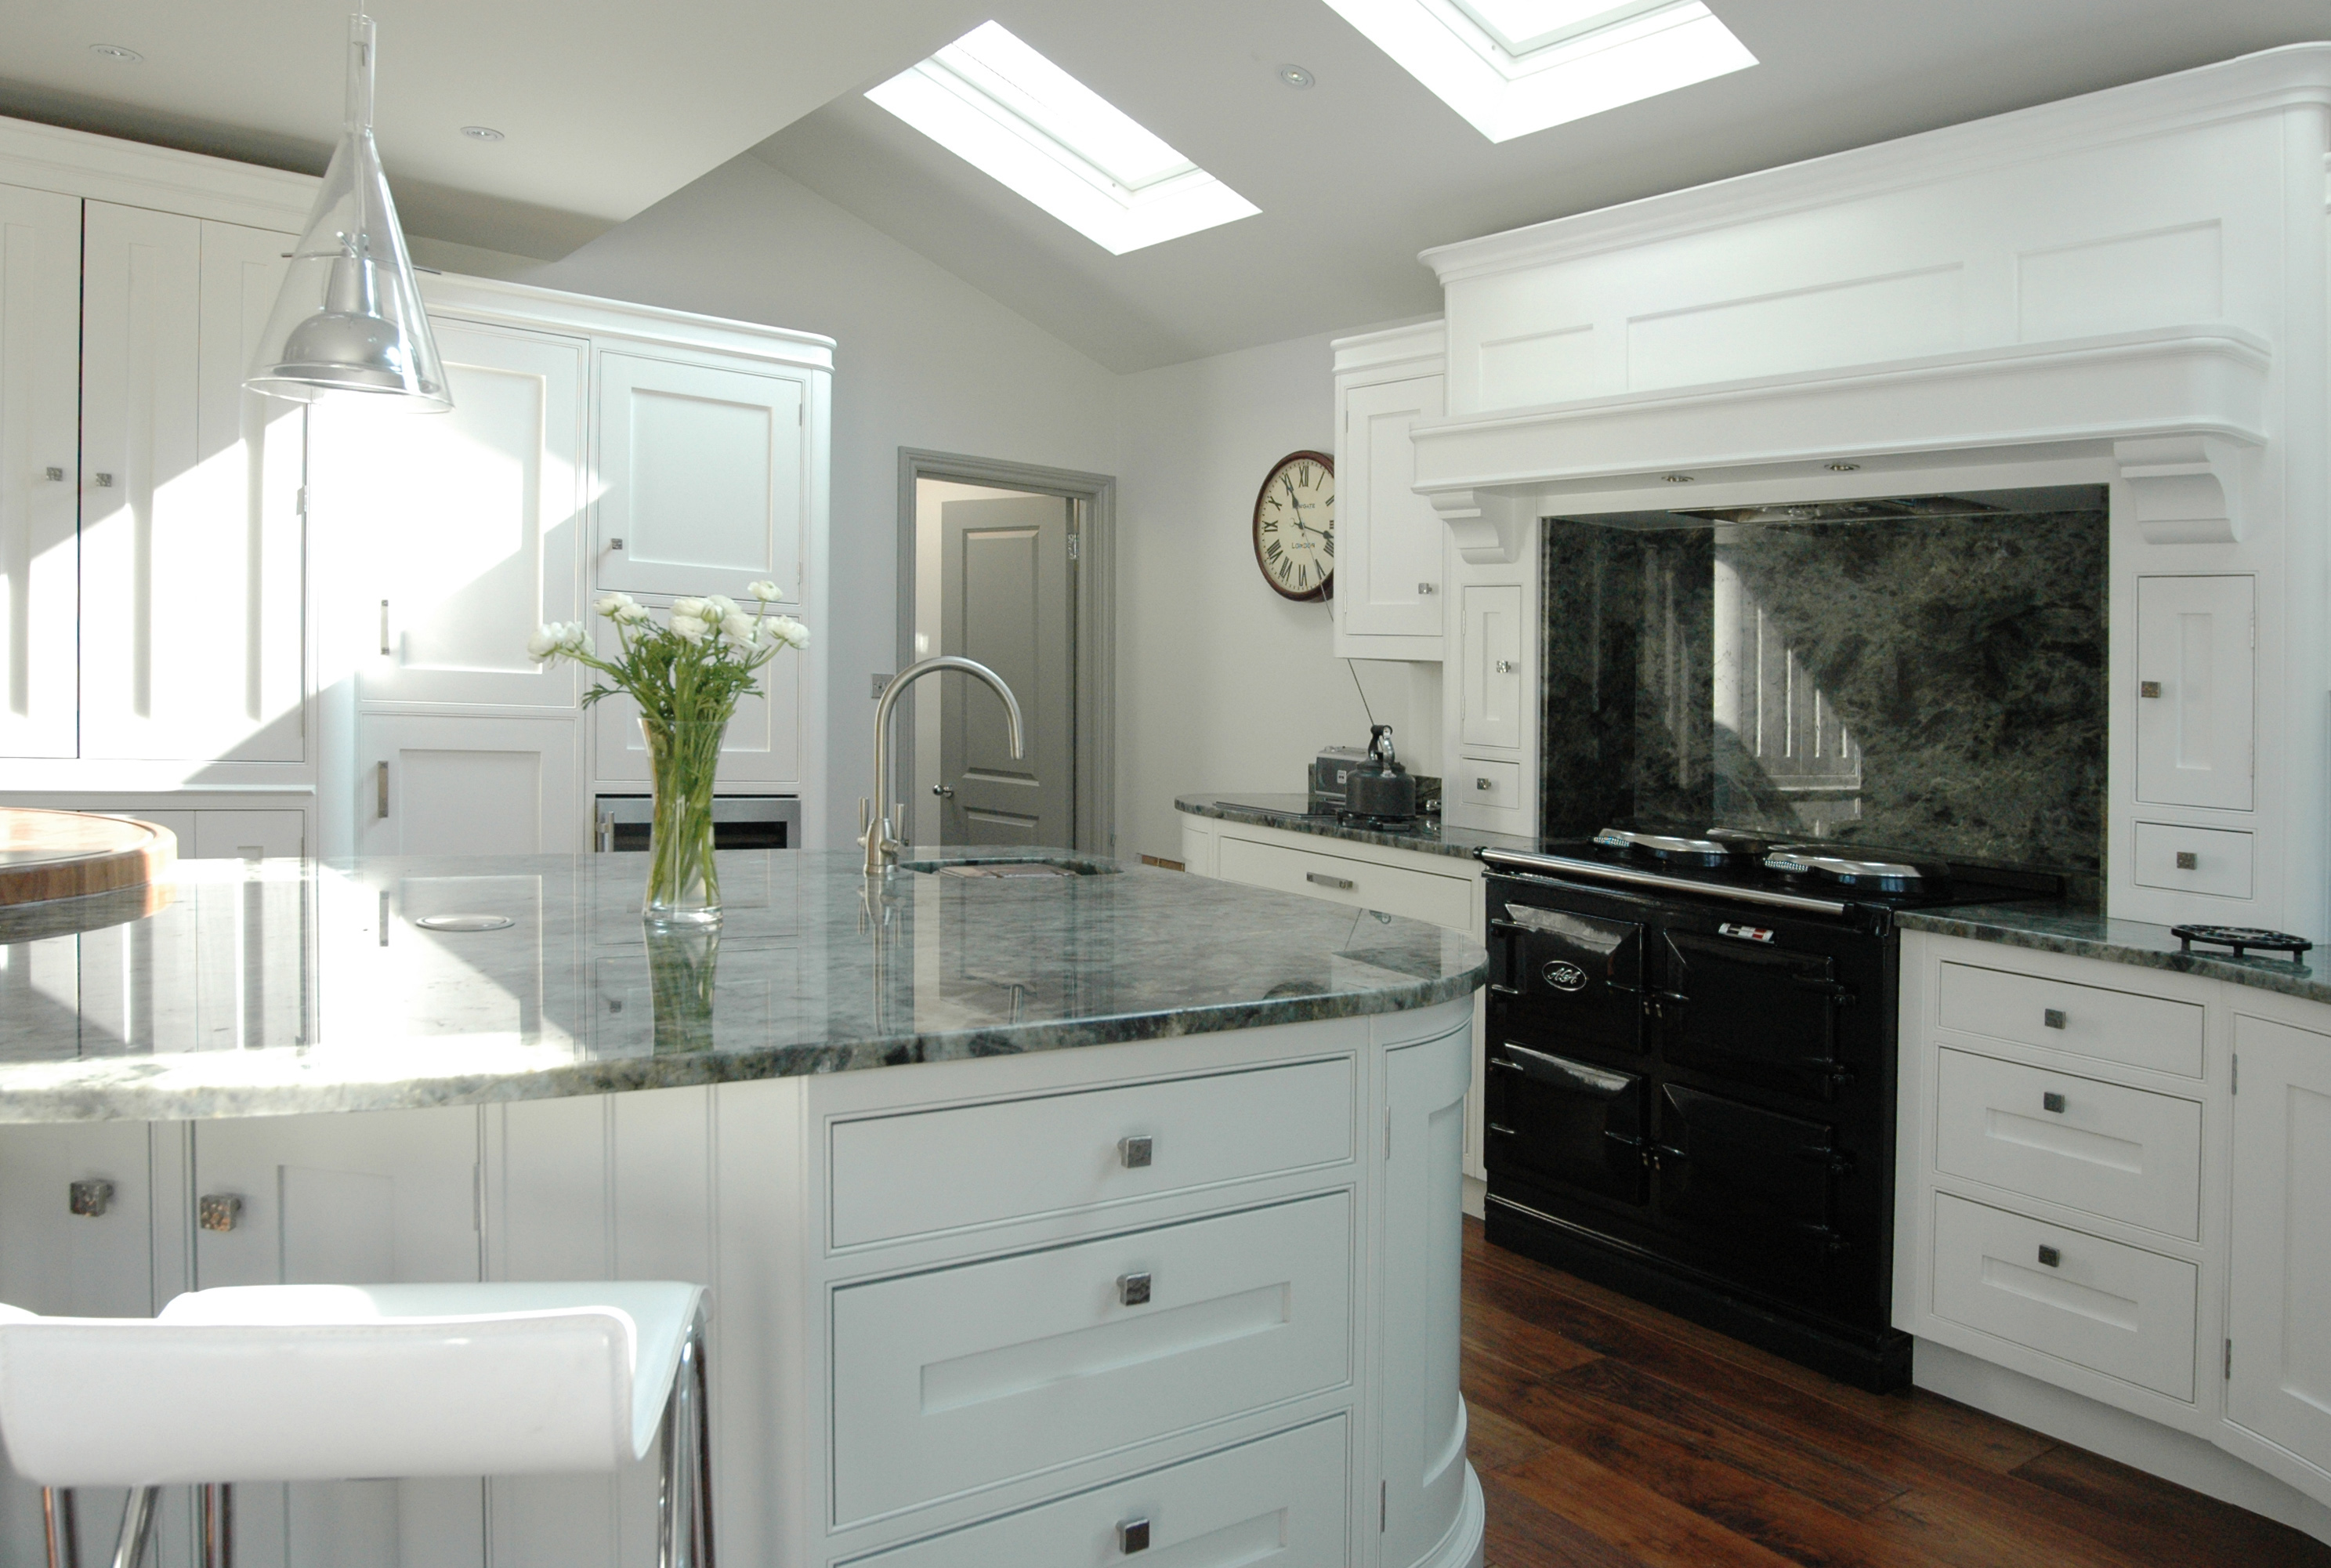 Custom Kitchen Design Archives - Interior Design Scottsdale, AZ by S ...